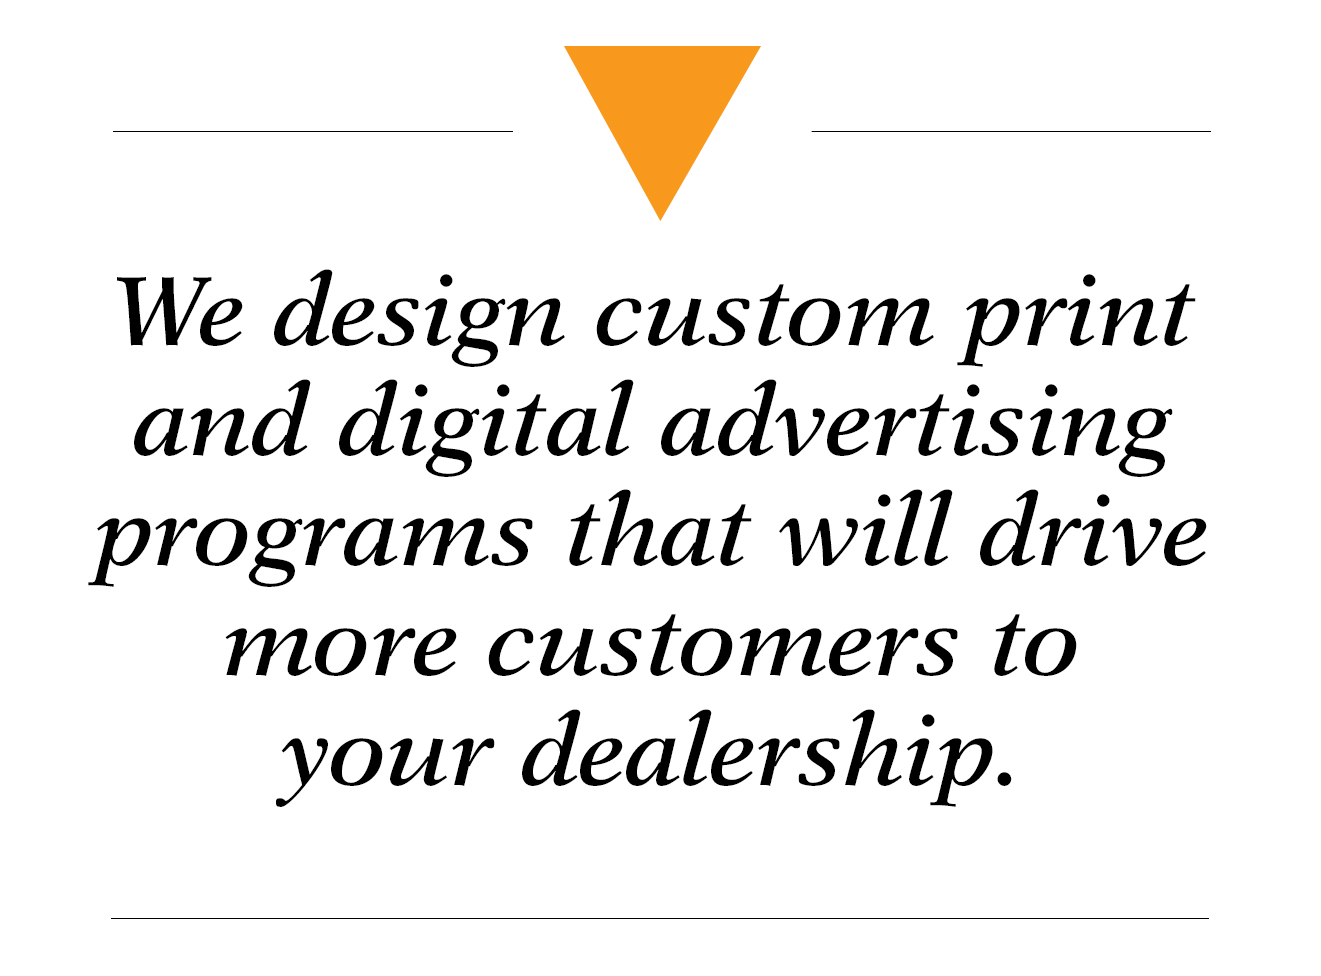 We design custom print and digital advertising programs that will drive more customers to your dealership.